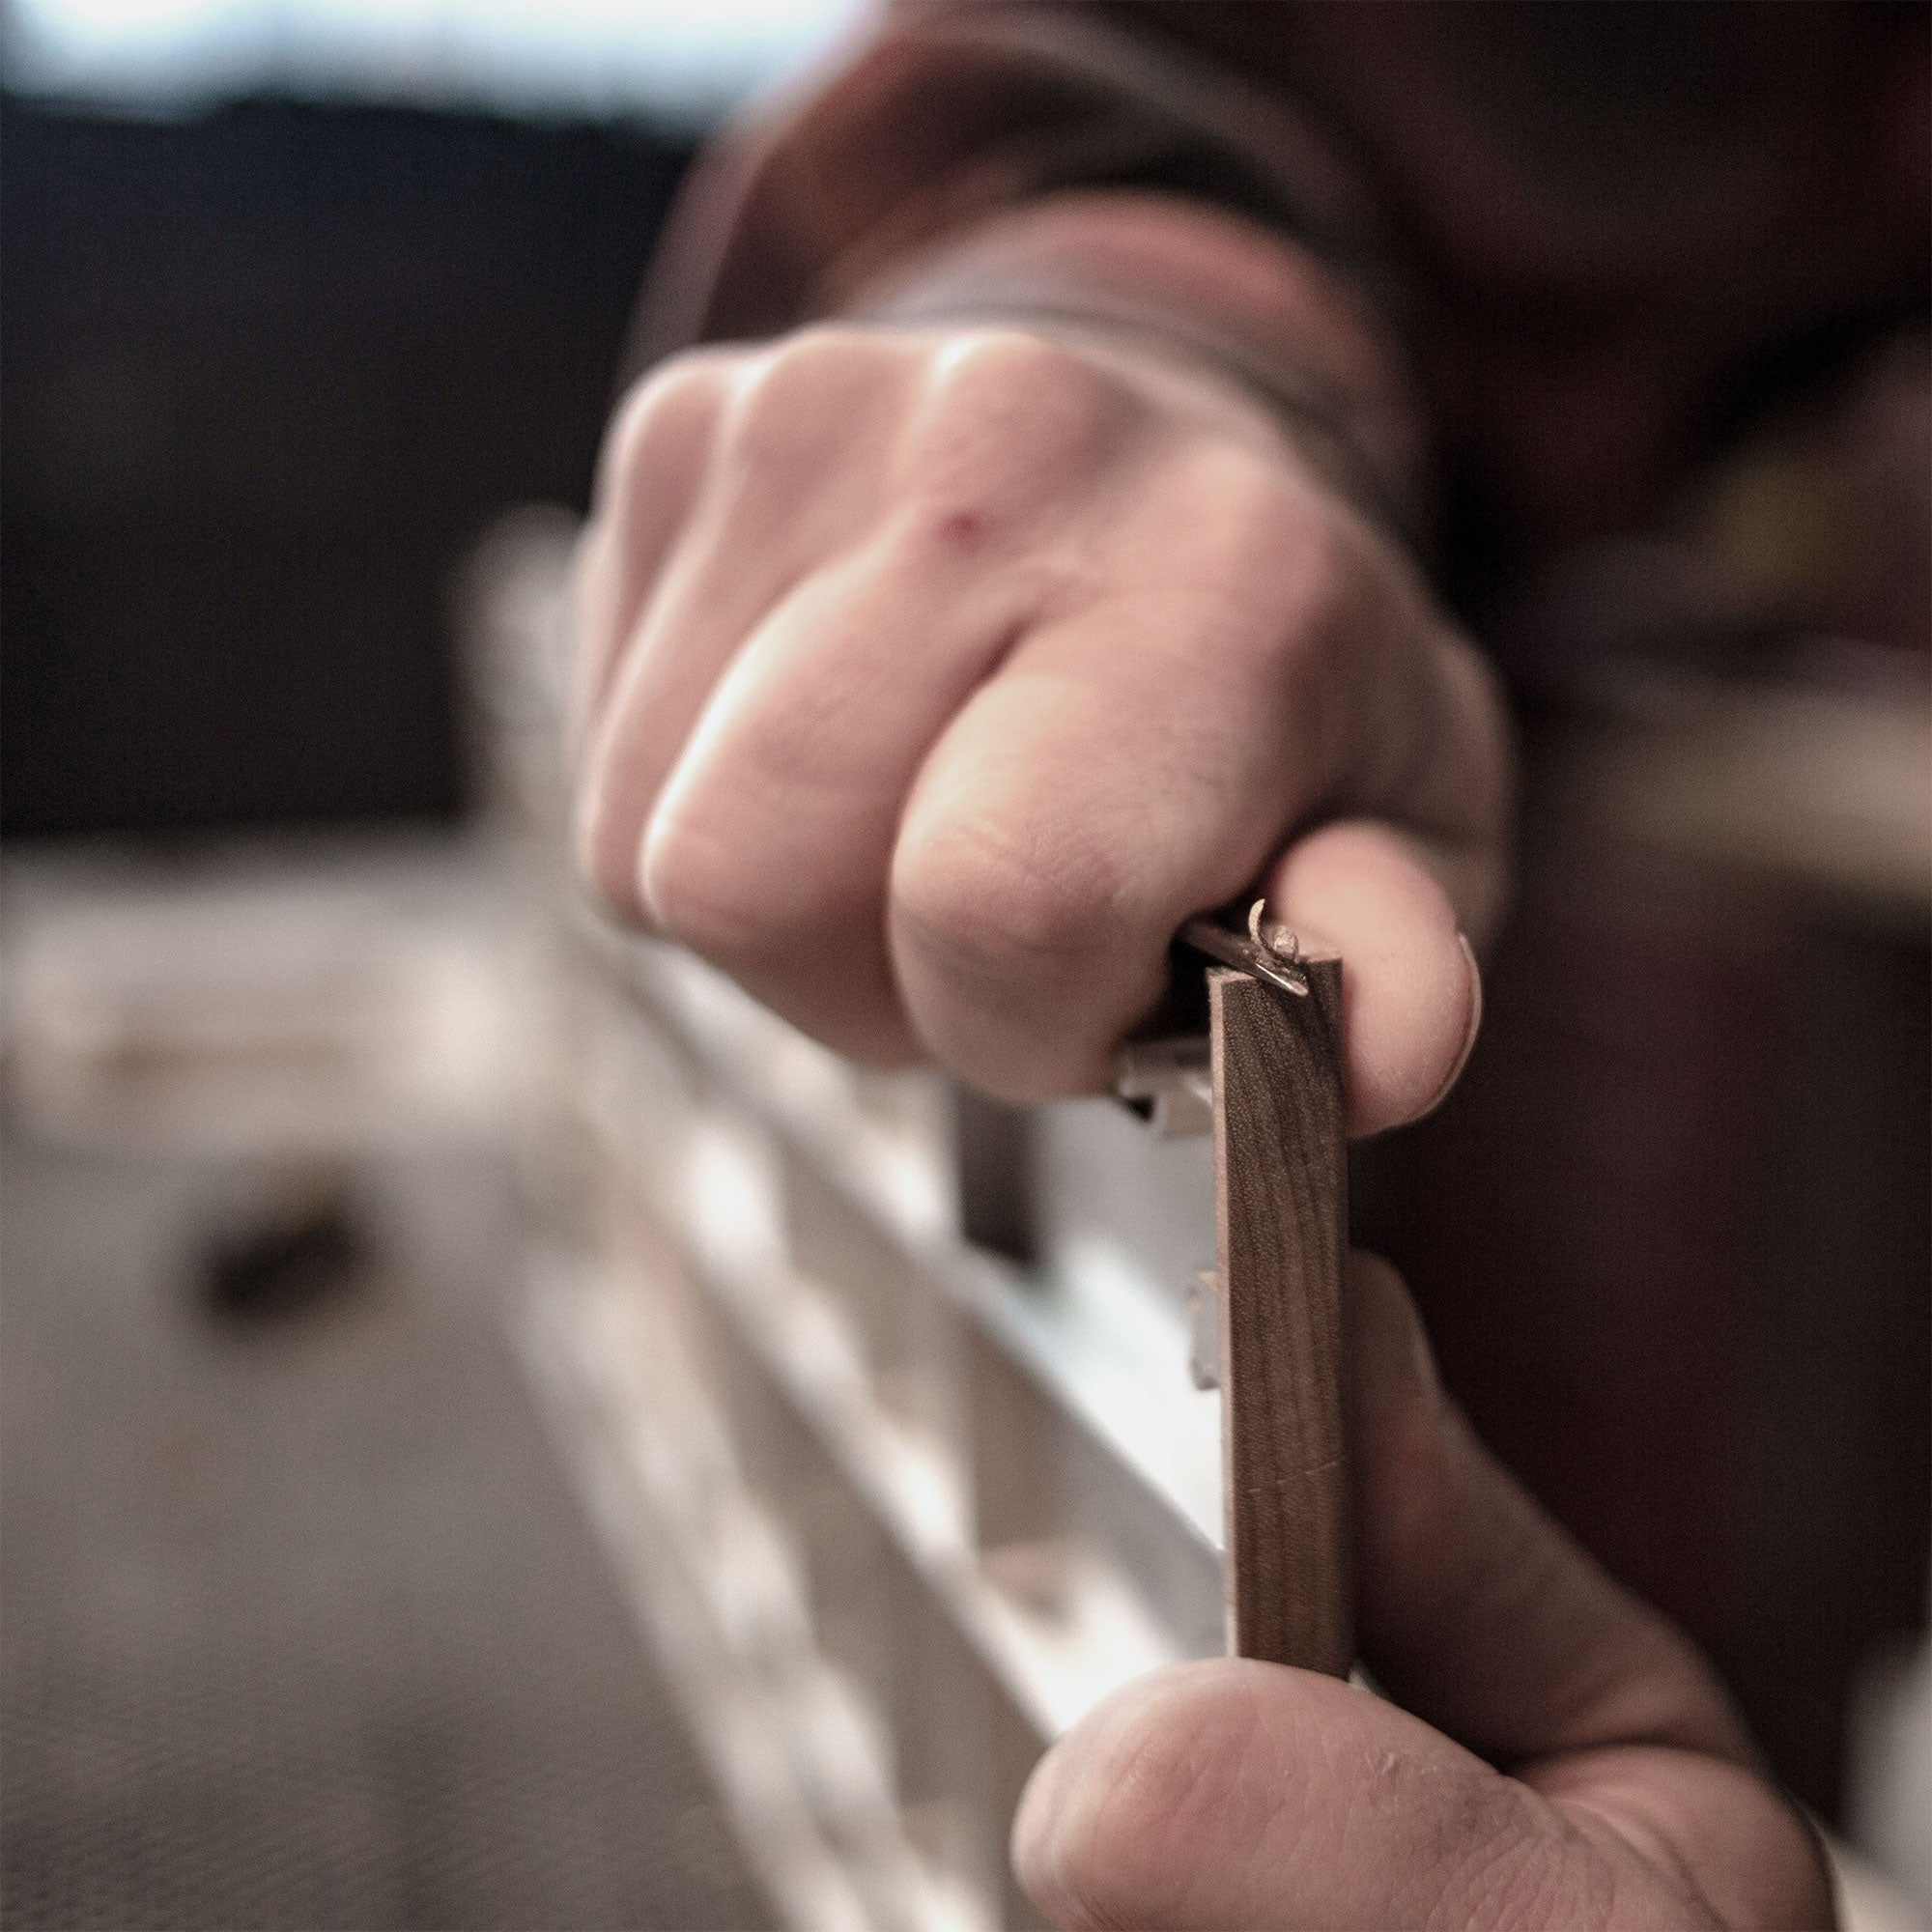 Luthier working the wood